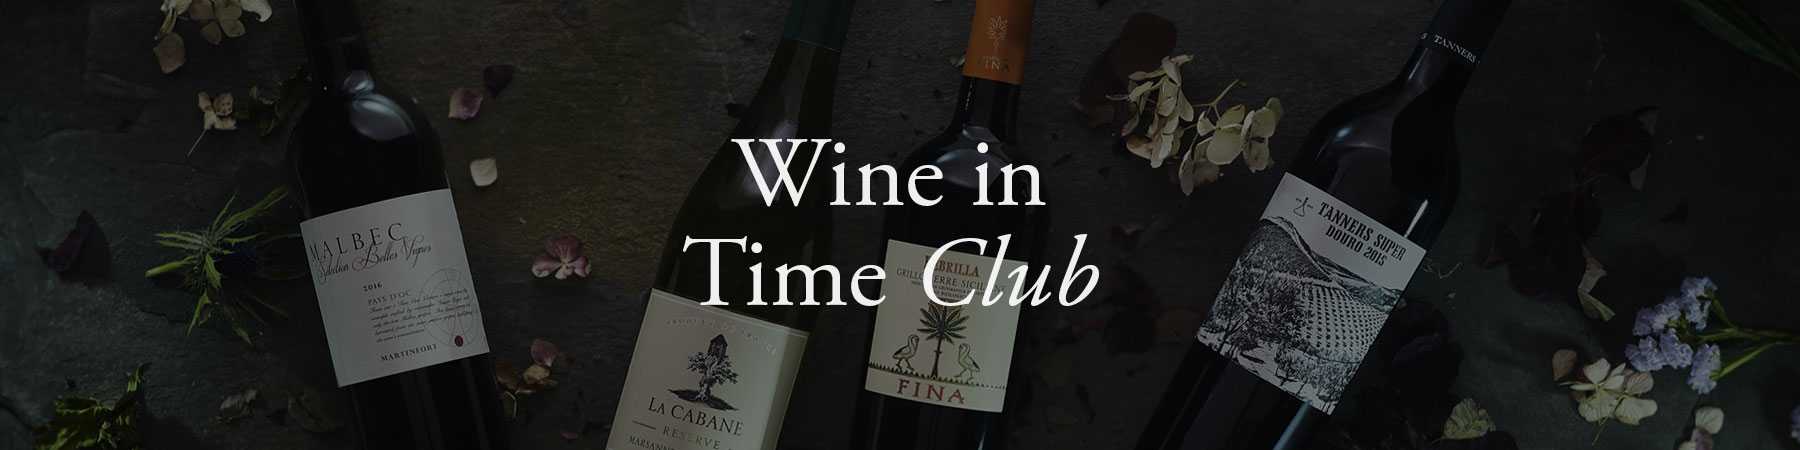 WINE IN TIME